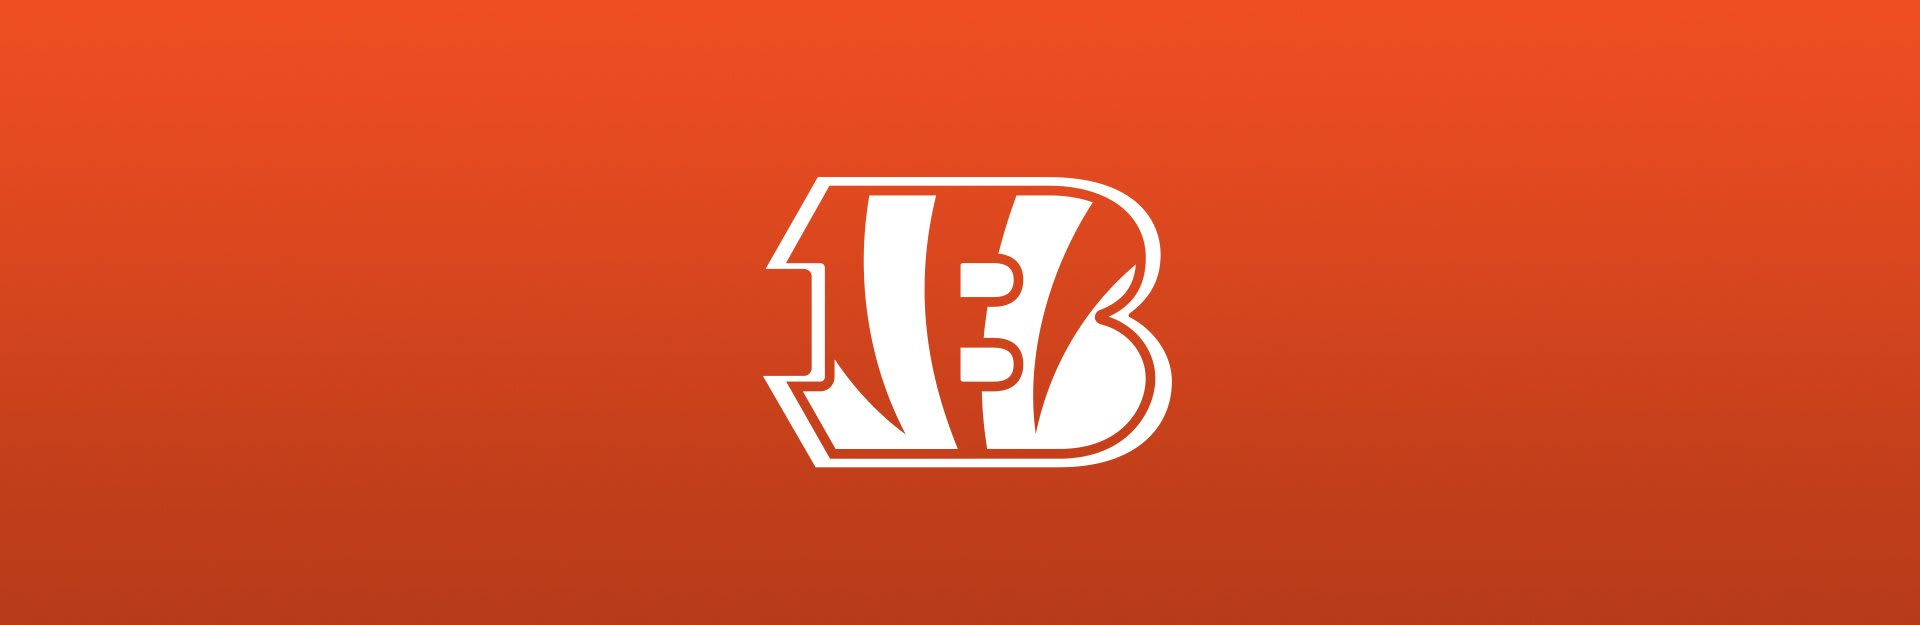 Bengals logo on orange background